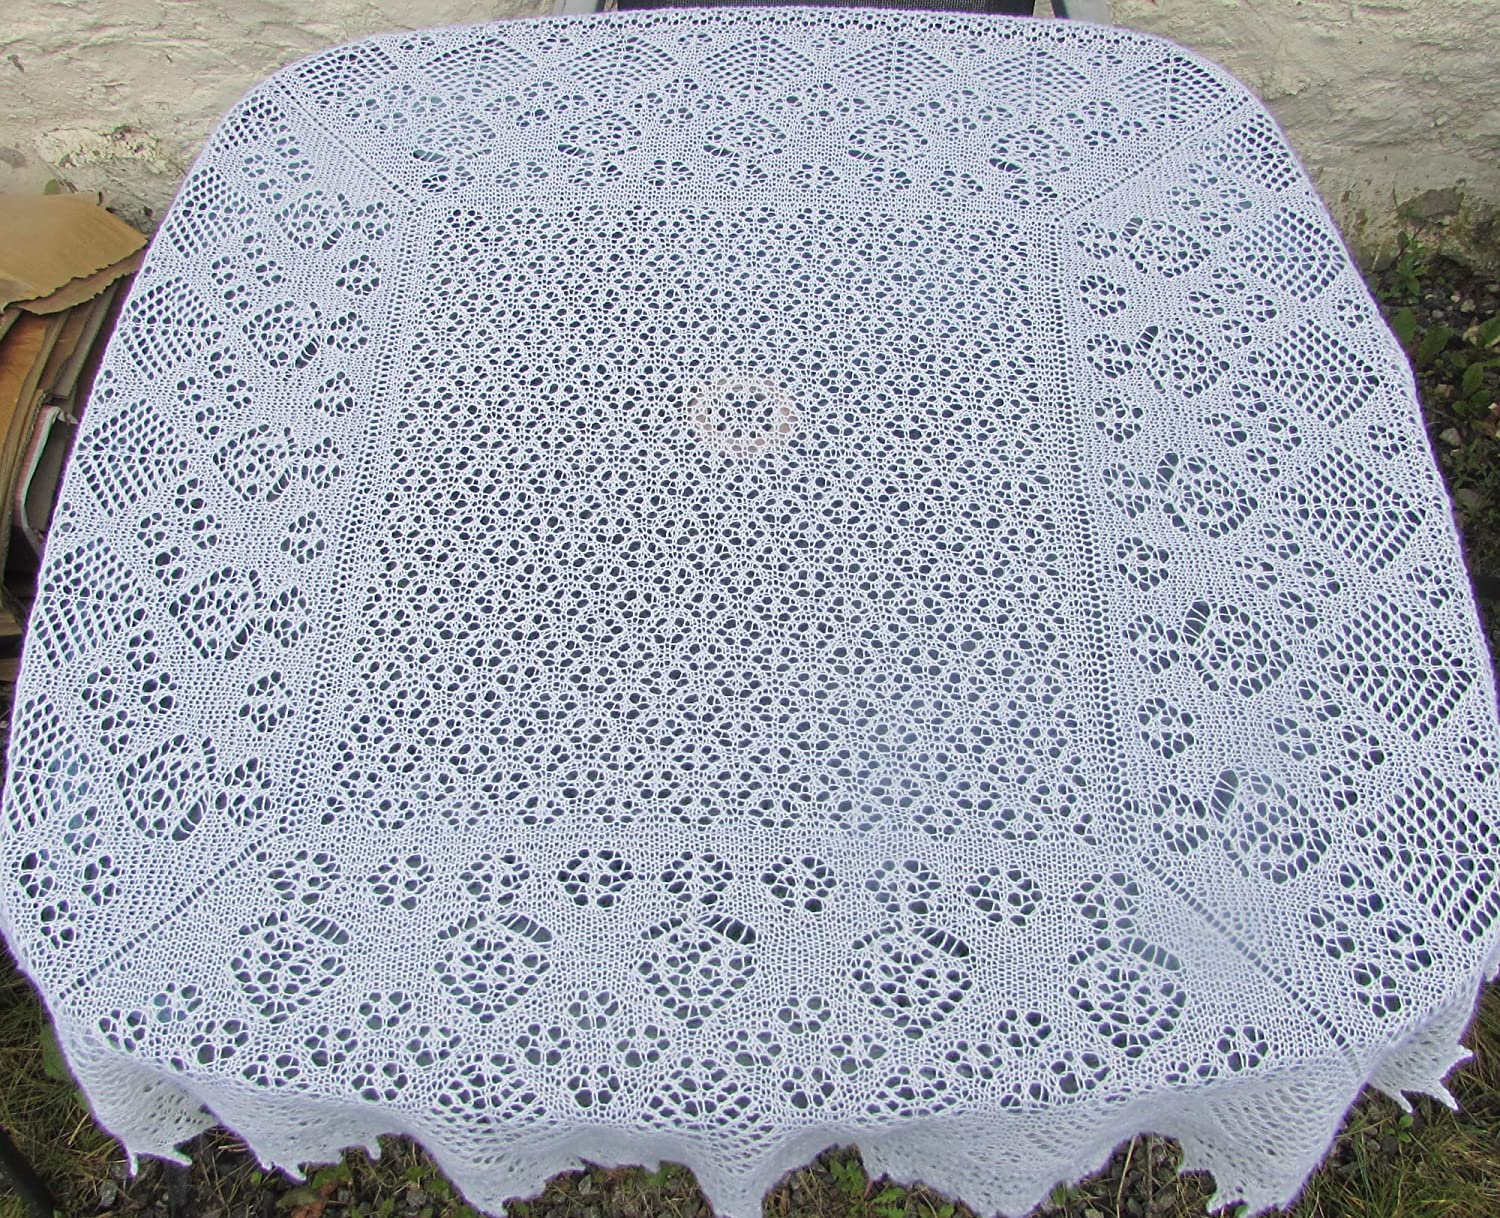 KNITTING PATTERN CIRCULAR AND SQUARE BABY BLANKET//SHAWLS IN 2-PLY